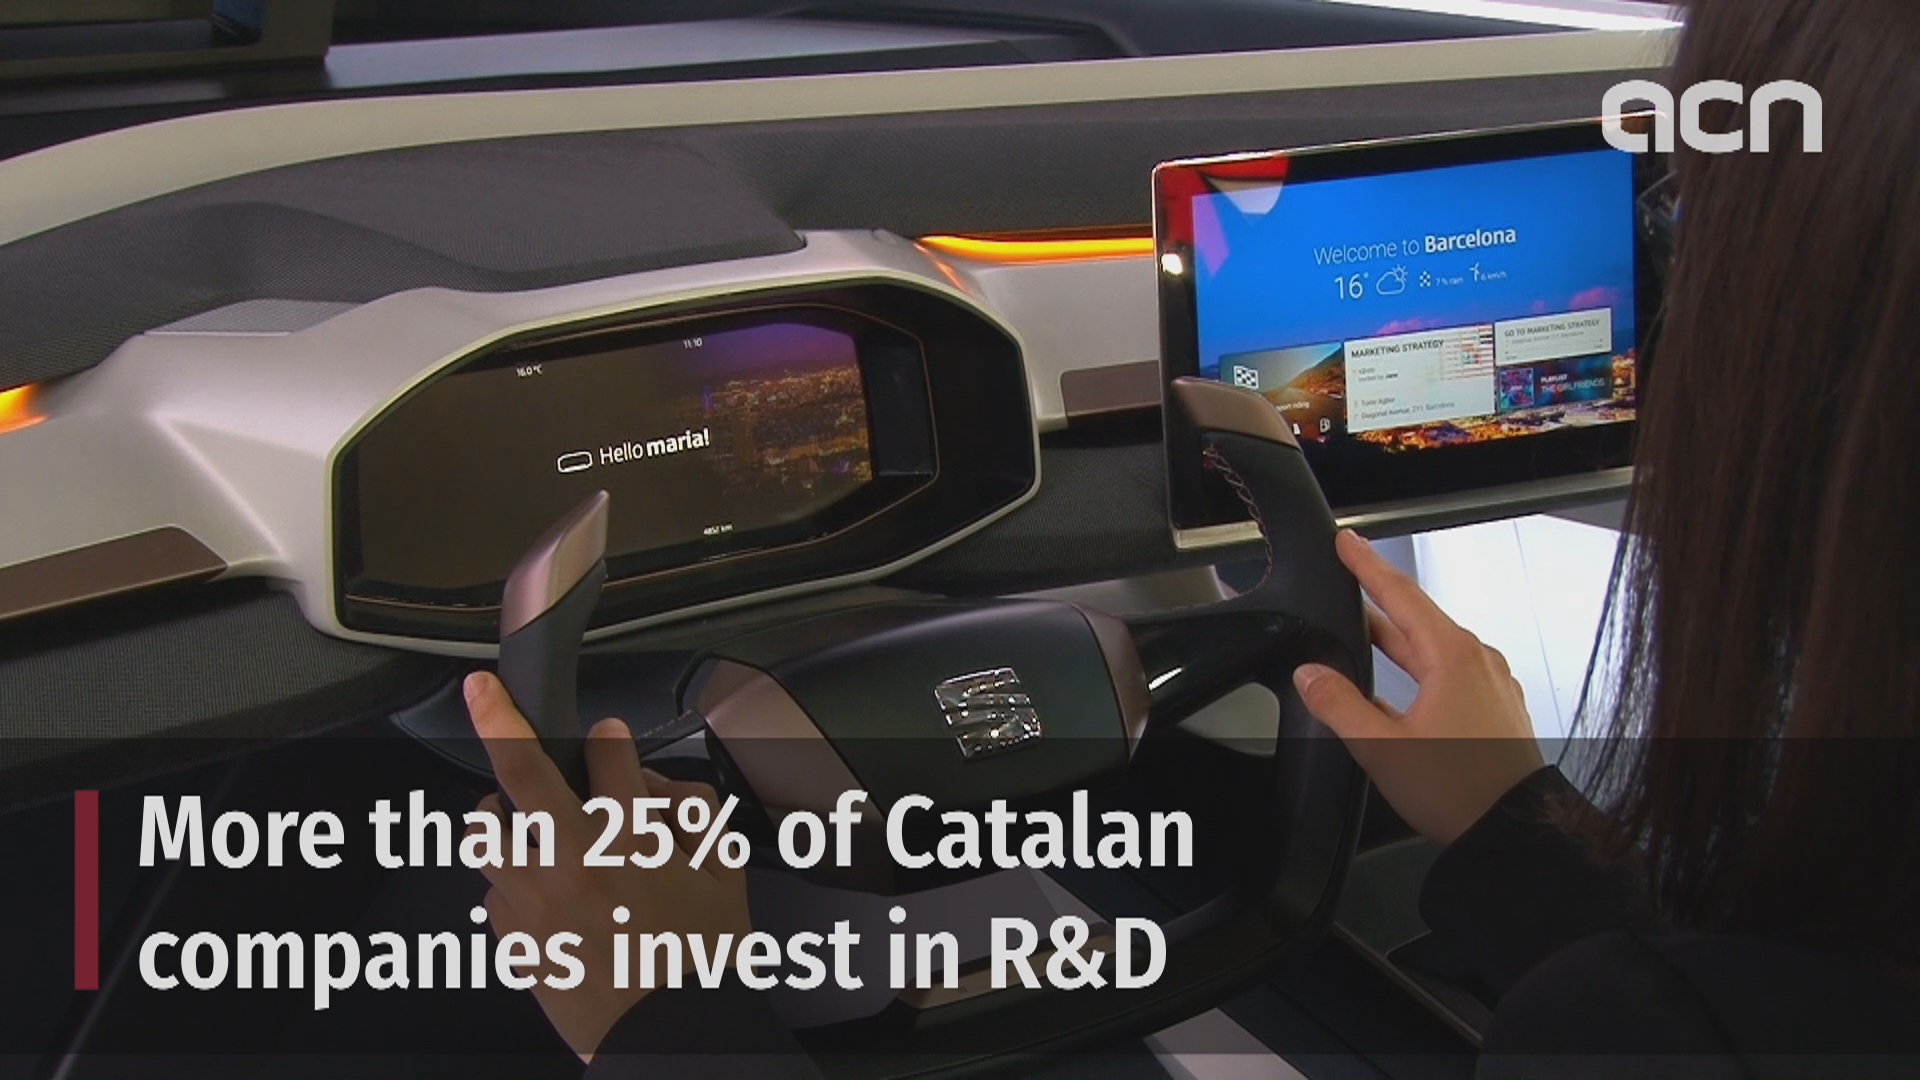 More than 25% of Catalan companies invest in R&D